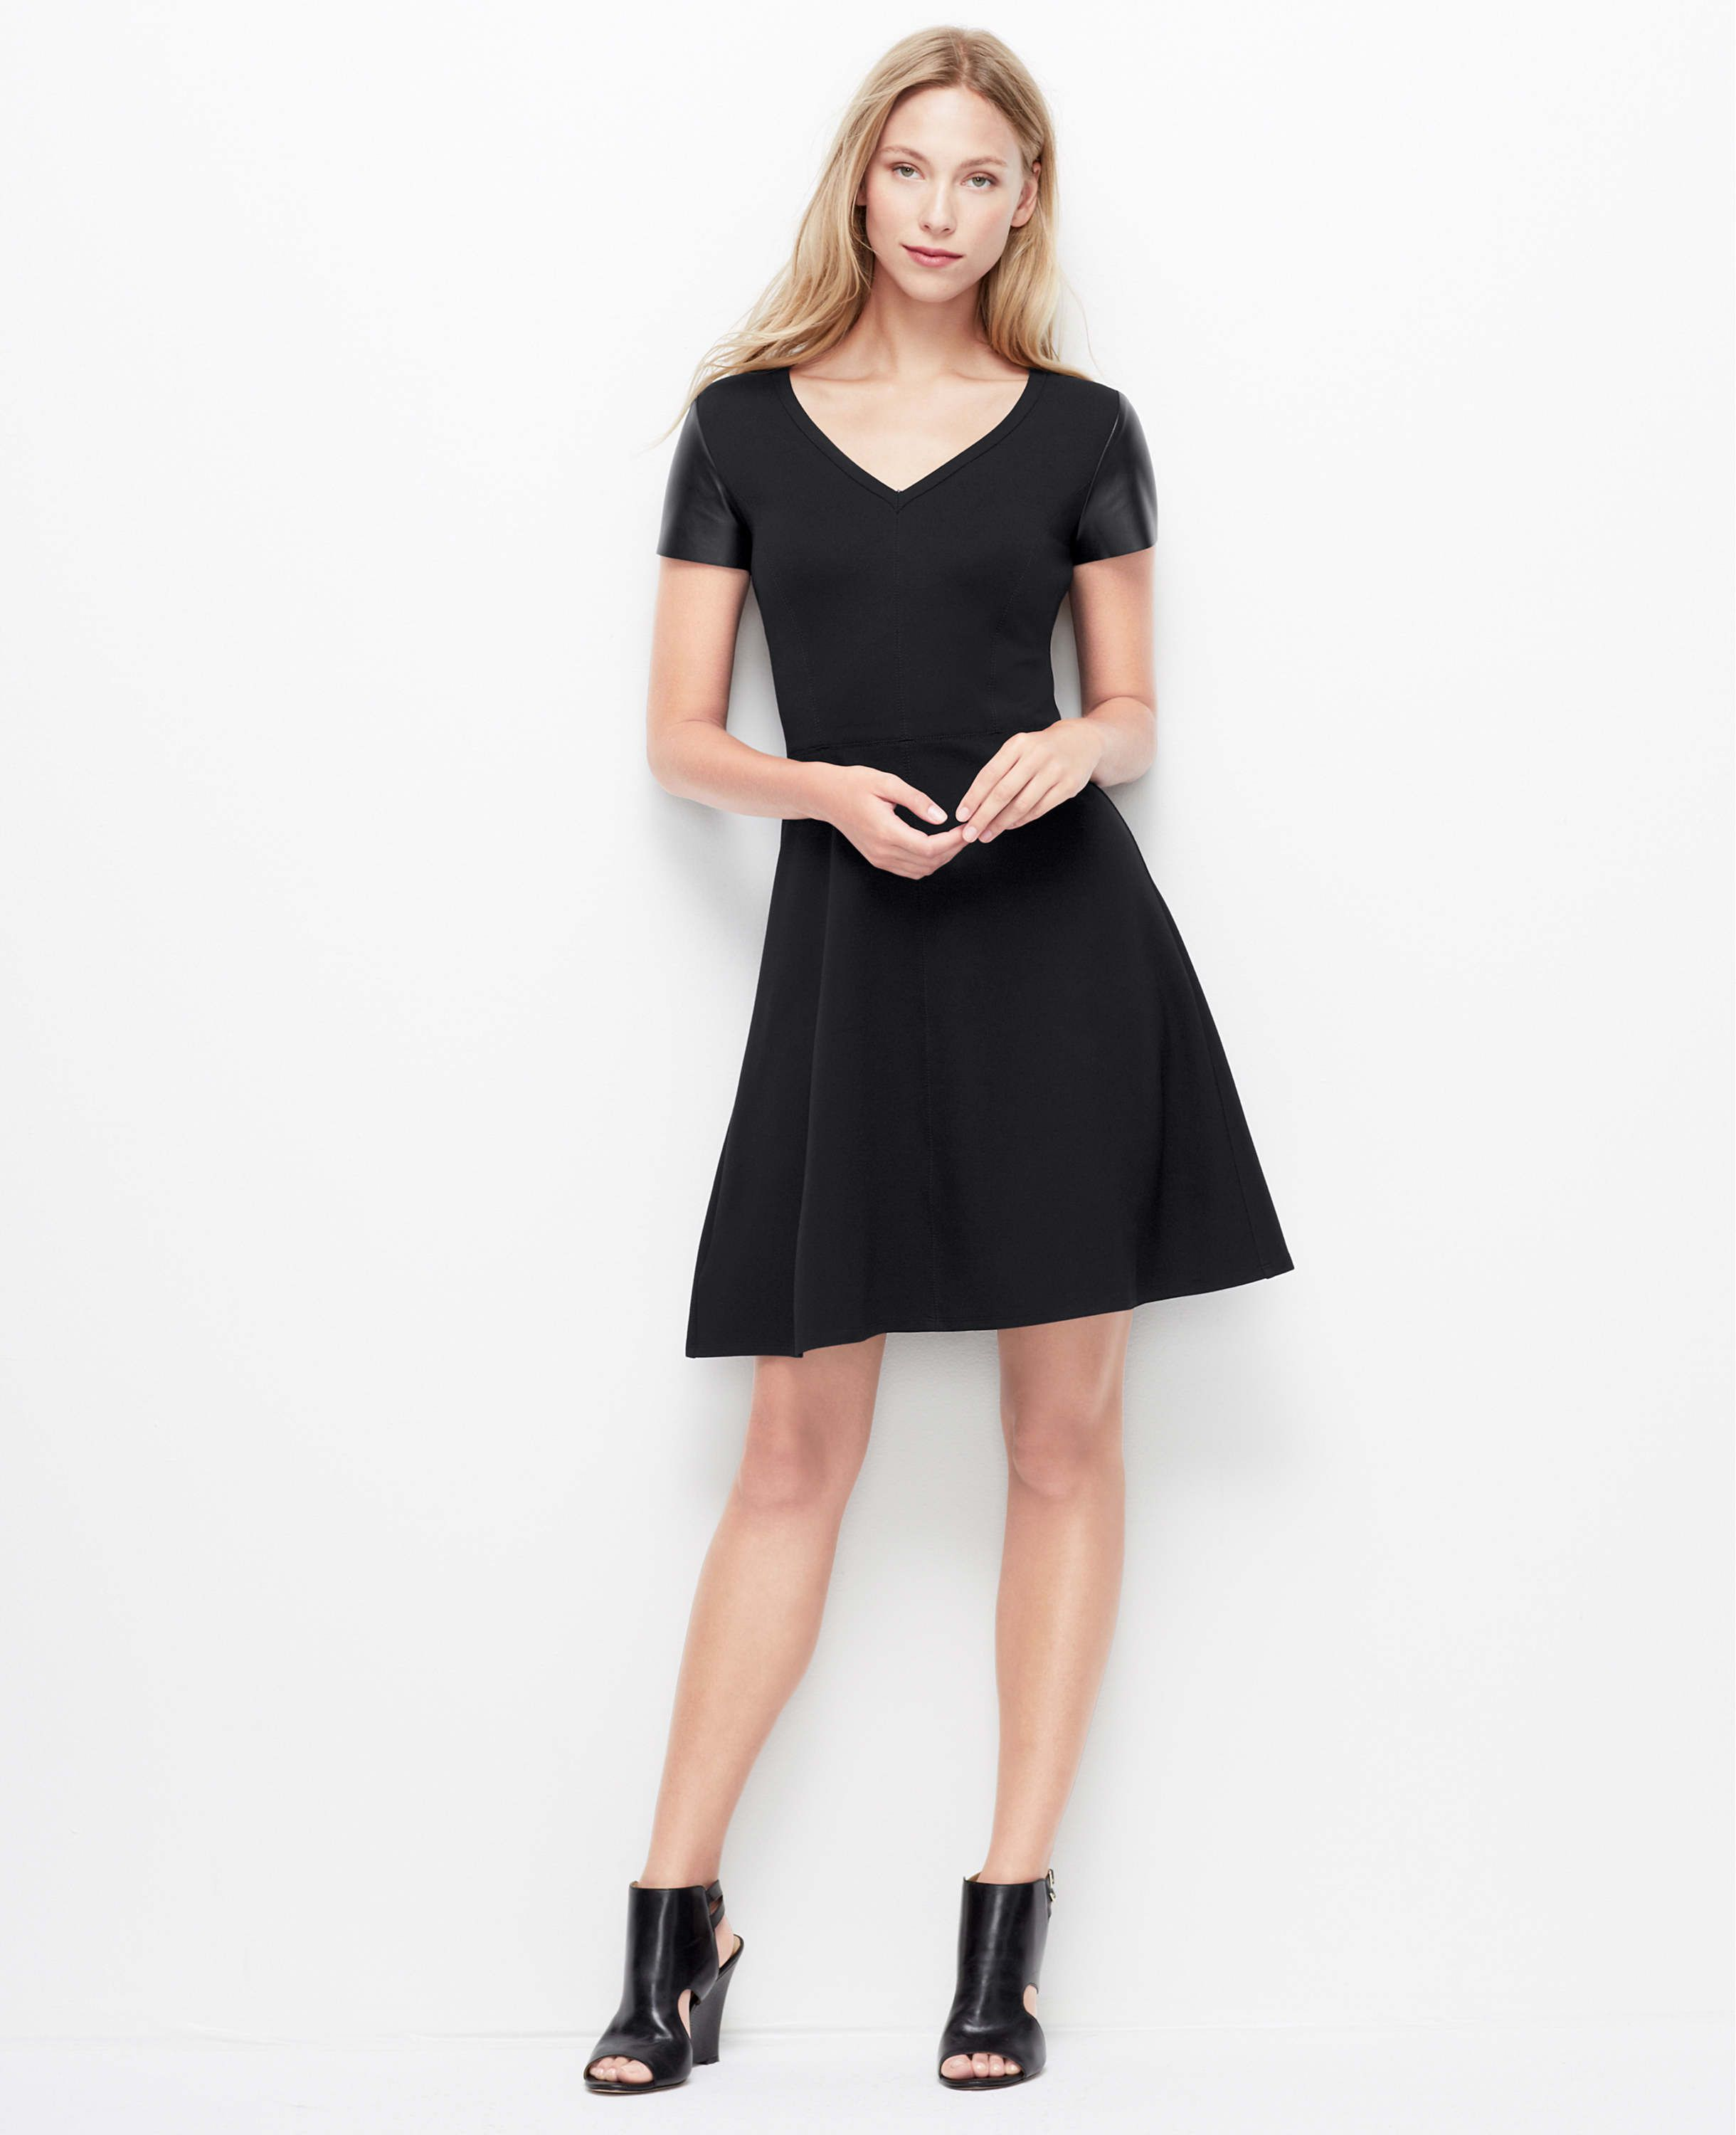 Faux Leather Short Sleeve Dress | Ann Taylor | Dresses I Like Most ...